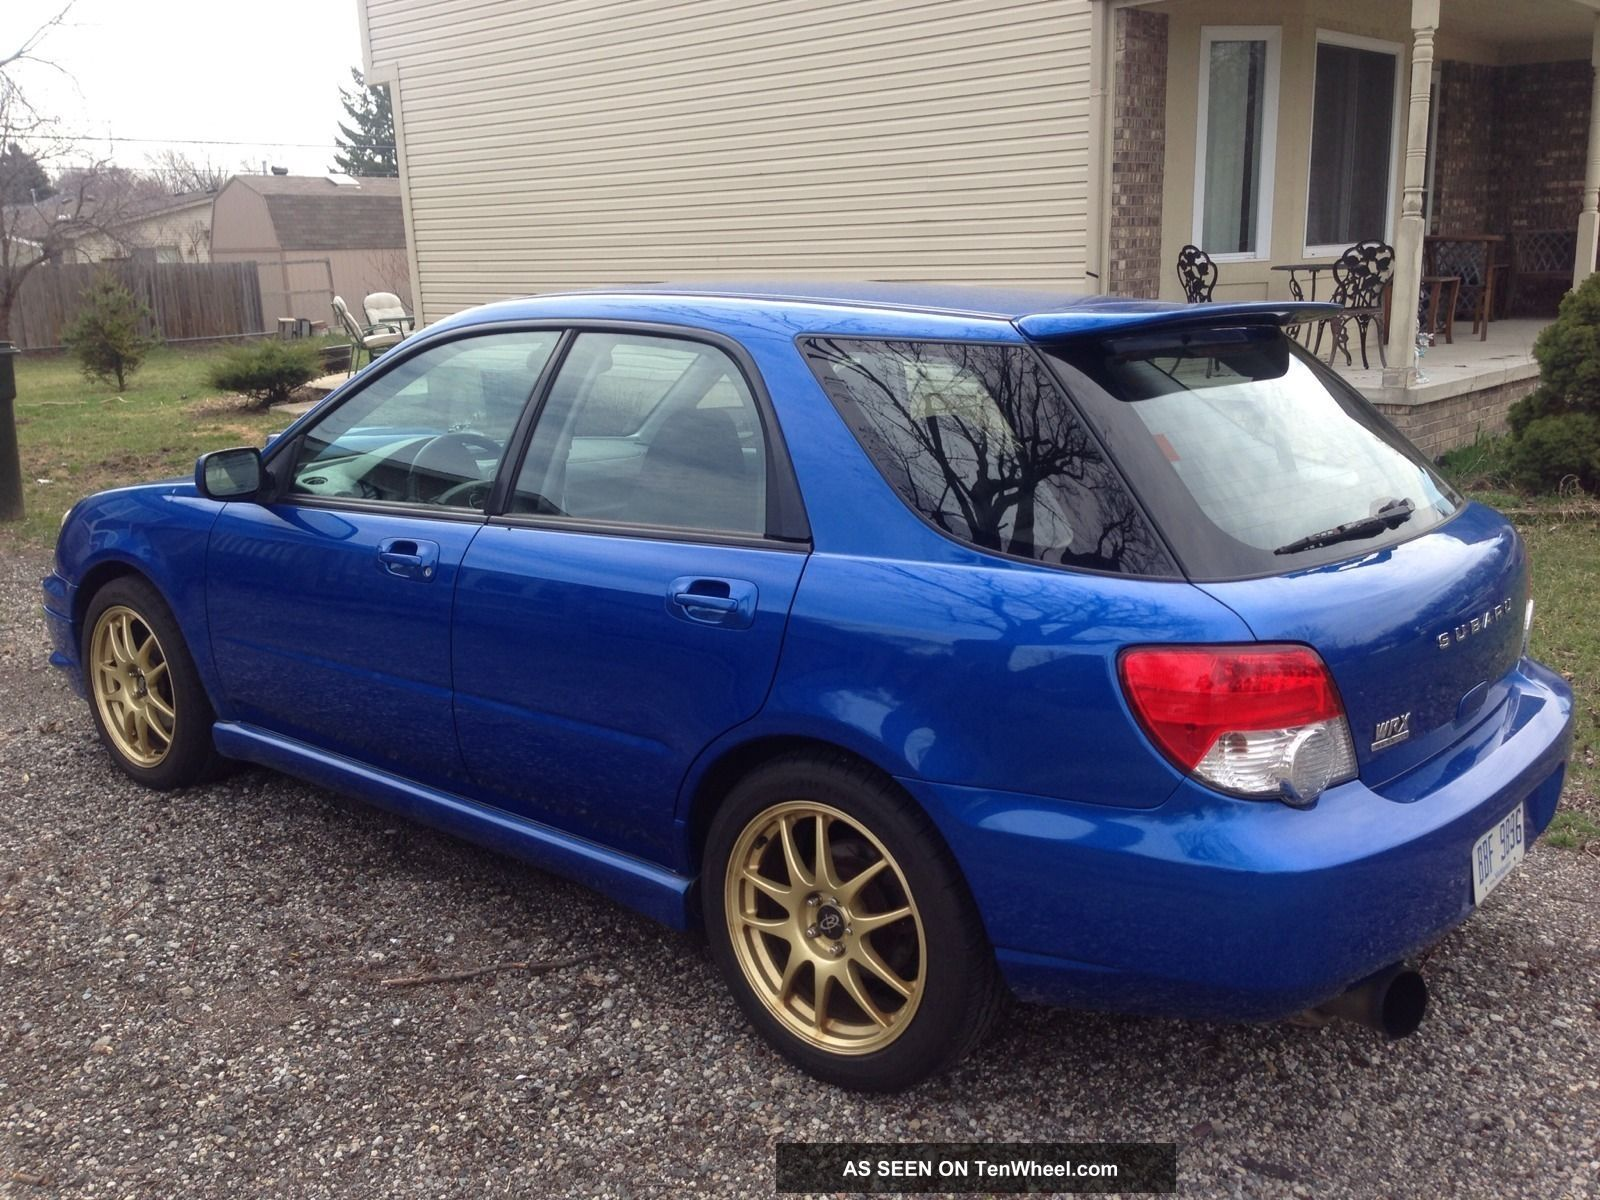 2002 subaru bugeye wrx impreza wagon vehicles ive owned 2004 subaru impreza wrx blue wagon this ones name was bubbles my daughter named it vanachro Images